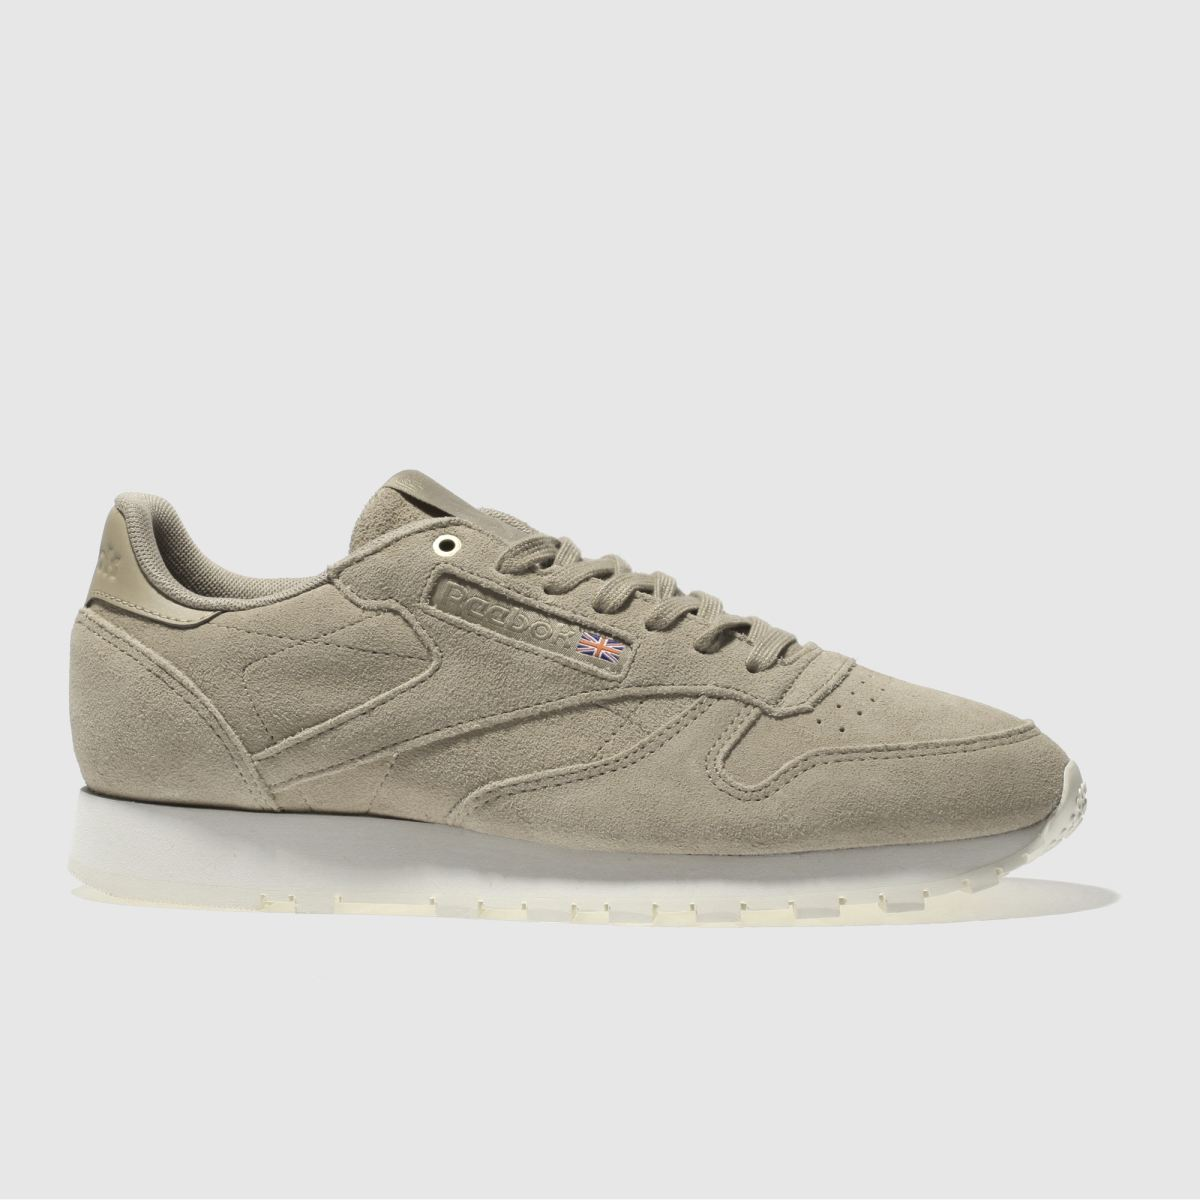 Reebok Beige Classic Leather Mcc Trainers